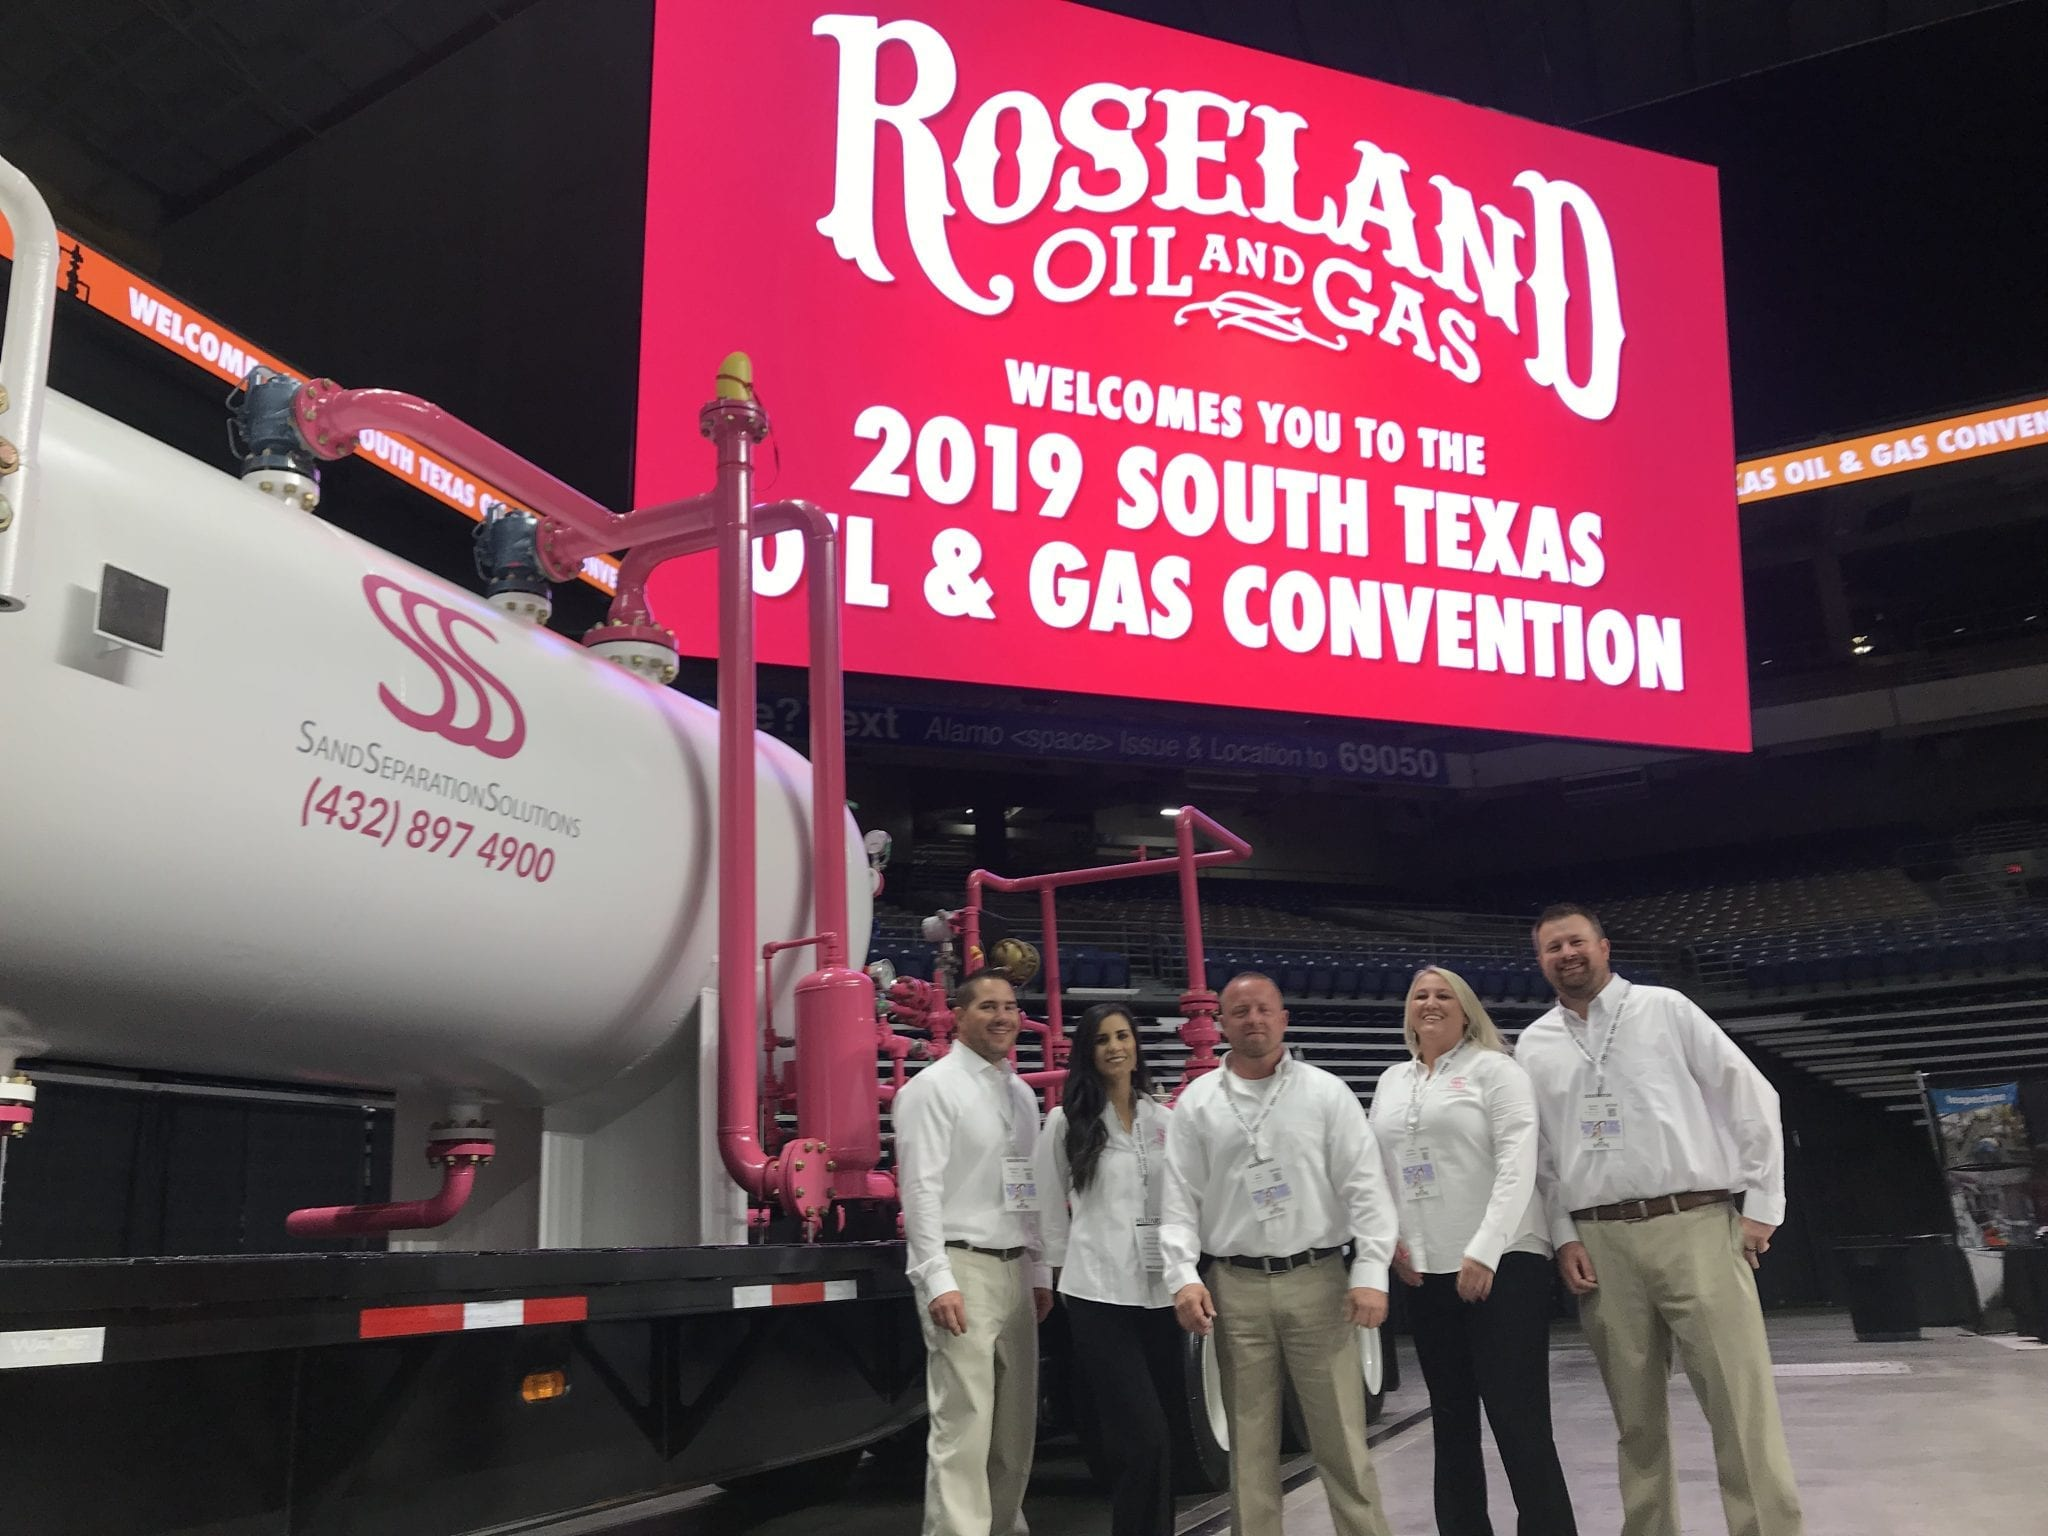 roseland oil and gas team photo